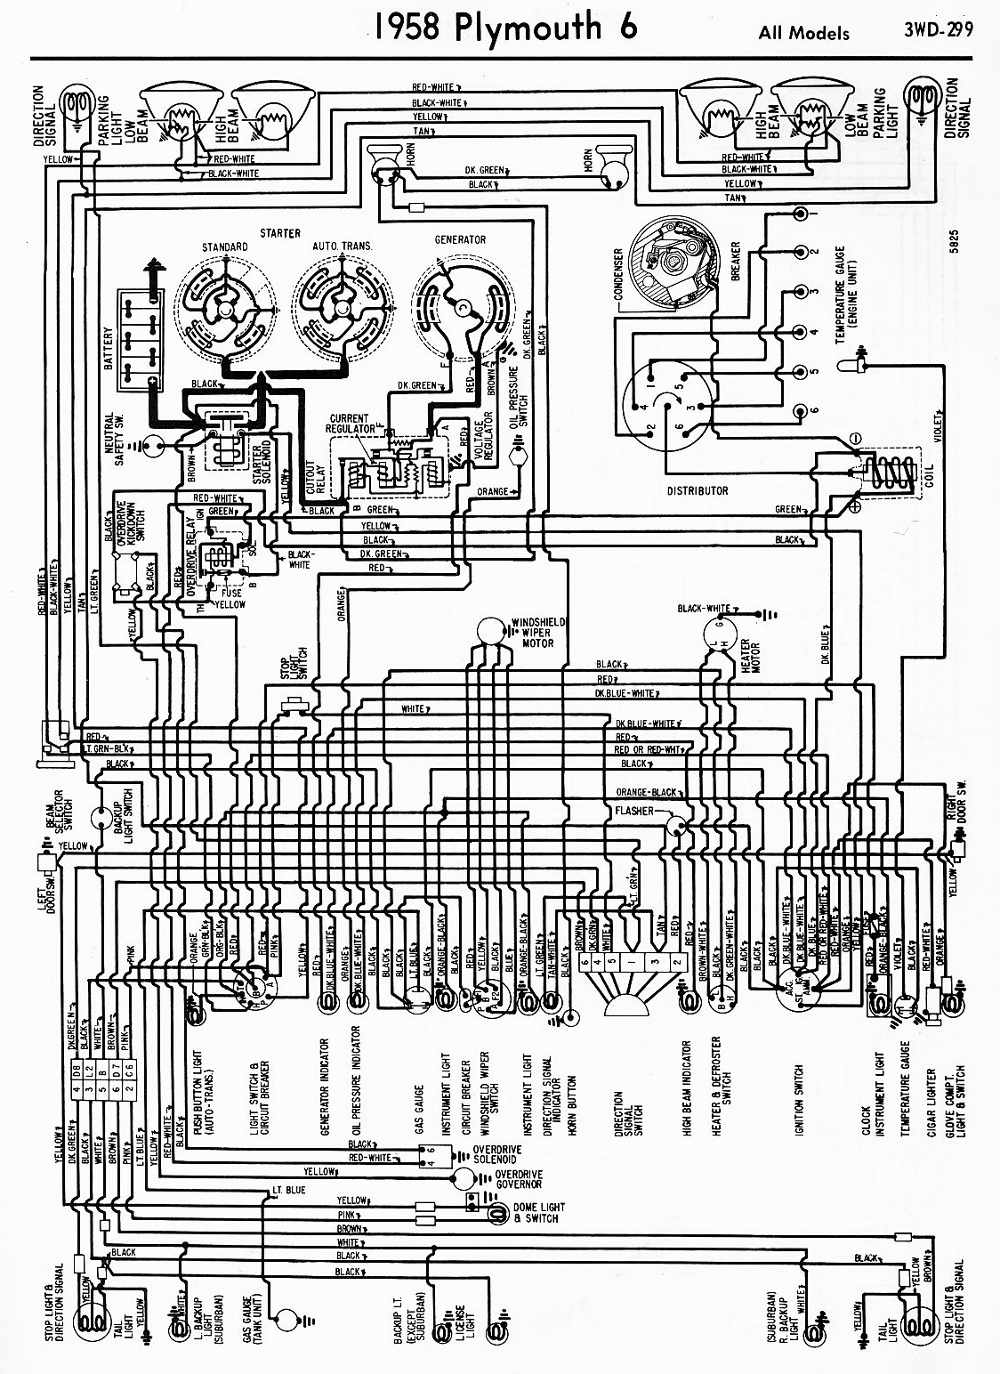 1950 packard wiring harness wiring diagram third level 1949 willys jeep wiring diagram 1949 packard wiring diagram [ 1000 x 1374 Pixel ]